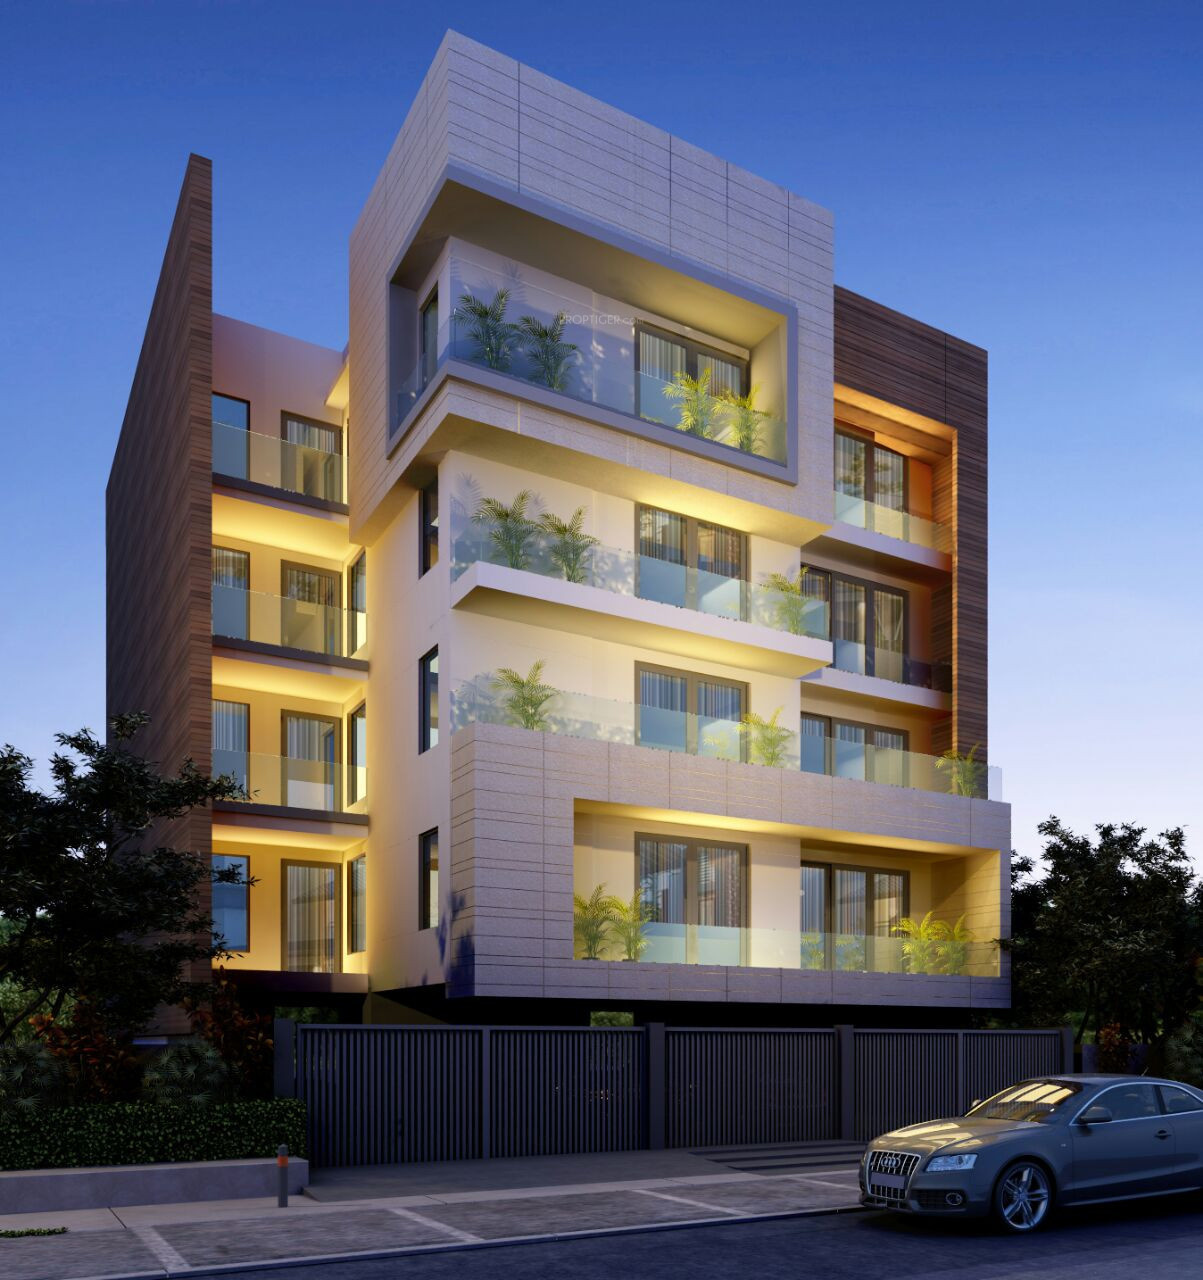 Timber Run Apartments: 2000 Sq Ft 4 BHK 5T Apartment For Sale In India Property